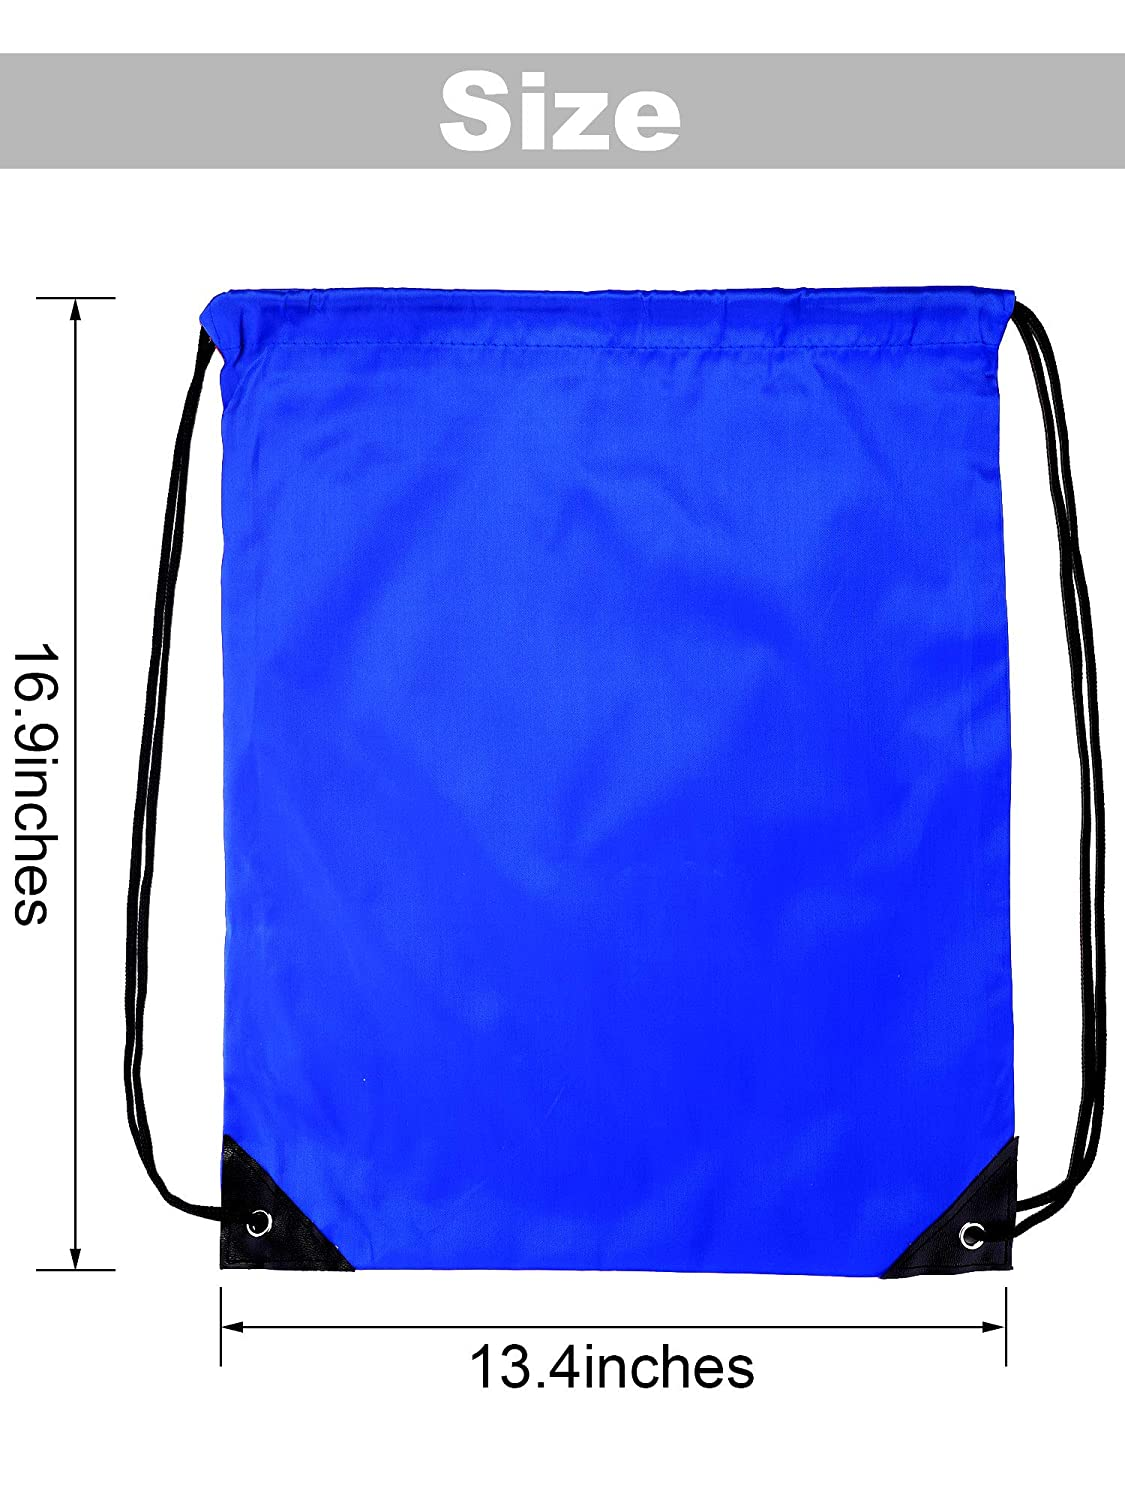 Shappy 20 Pieces Drawstring Bag Backpack Sport Bag Cinch Tote Travel Rucksack for Traveling and Storage Fluorescent Green